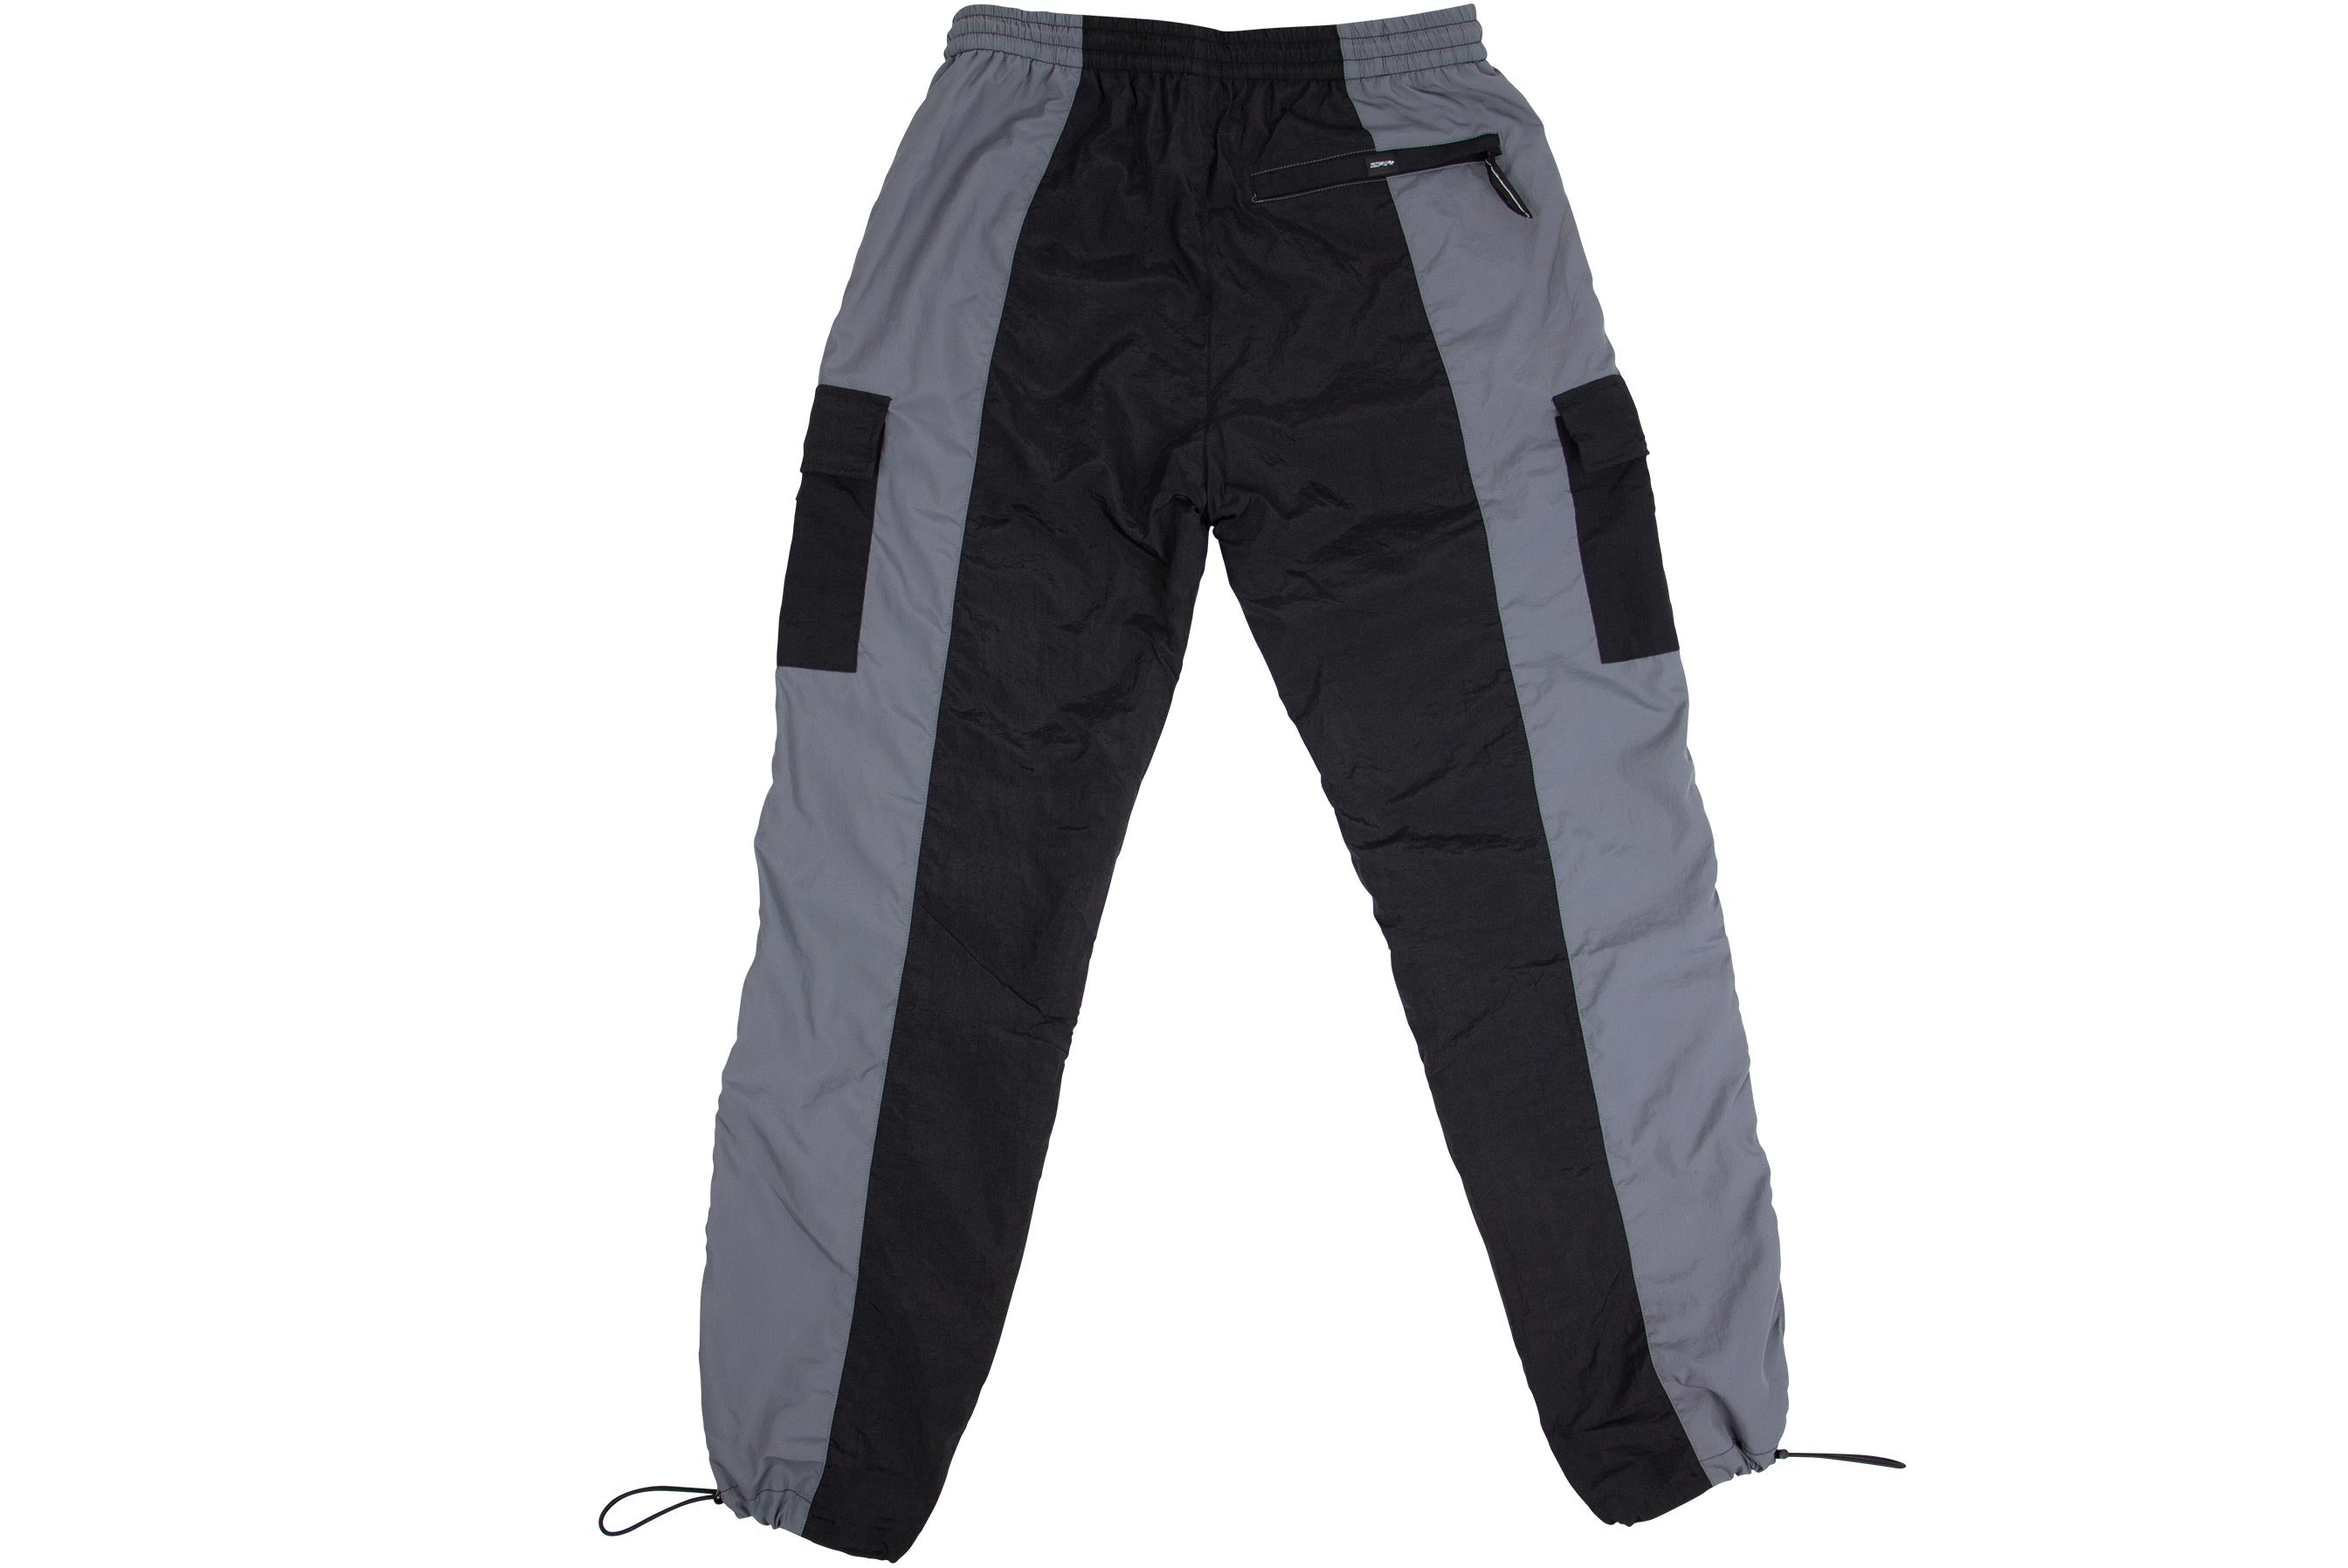 SPLIT CARGO TRACK PANTS // BLACK & GREY